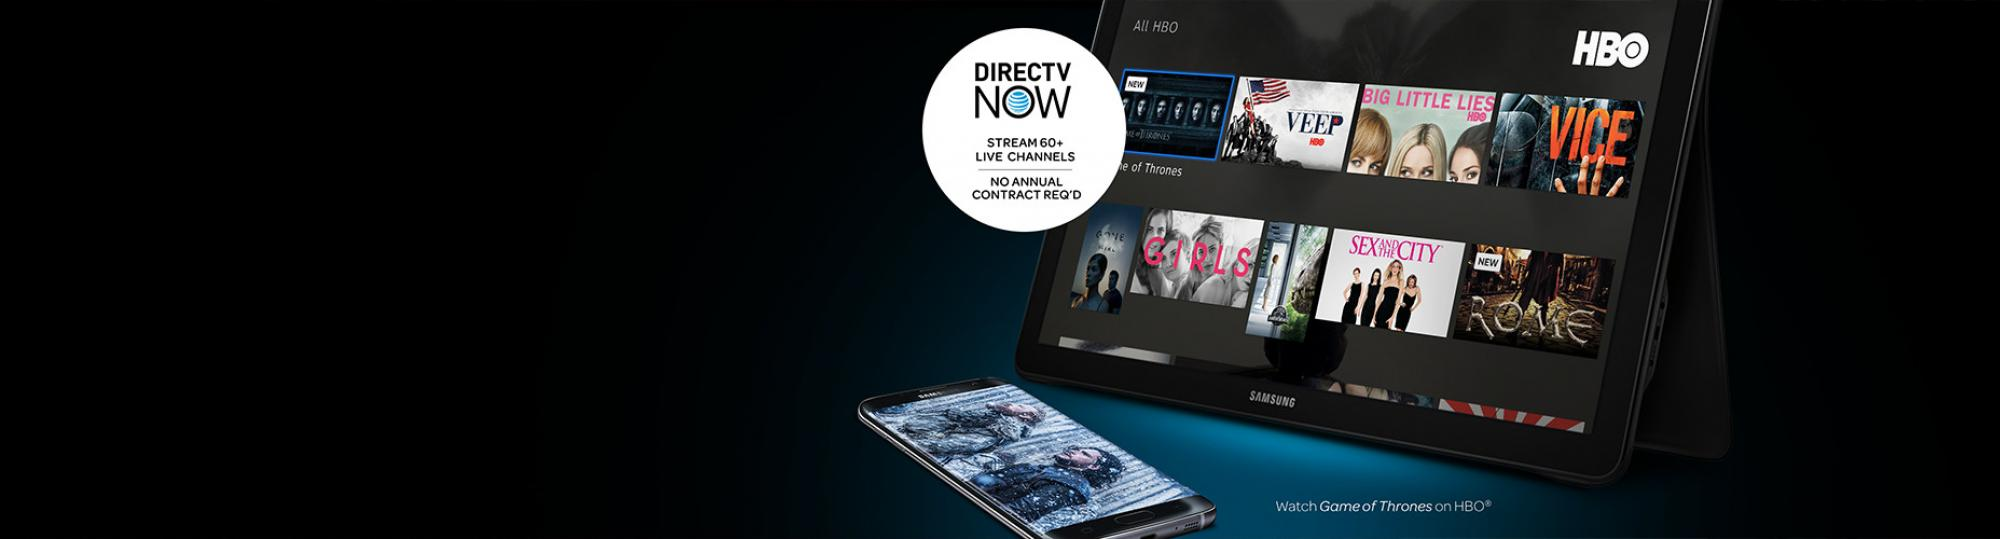 Directtv Military Discounts with Veterans Advantage